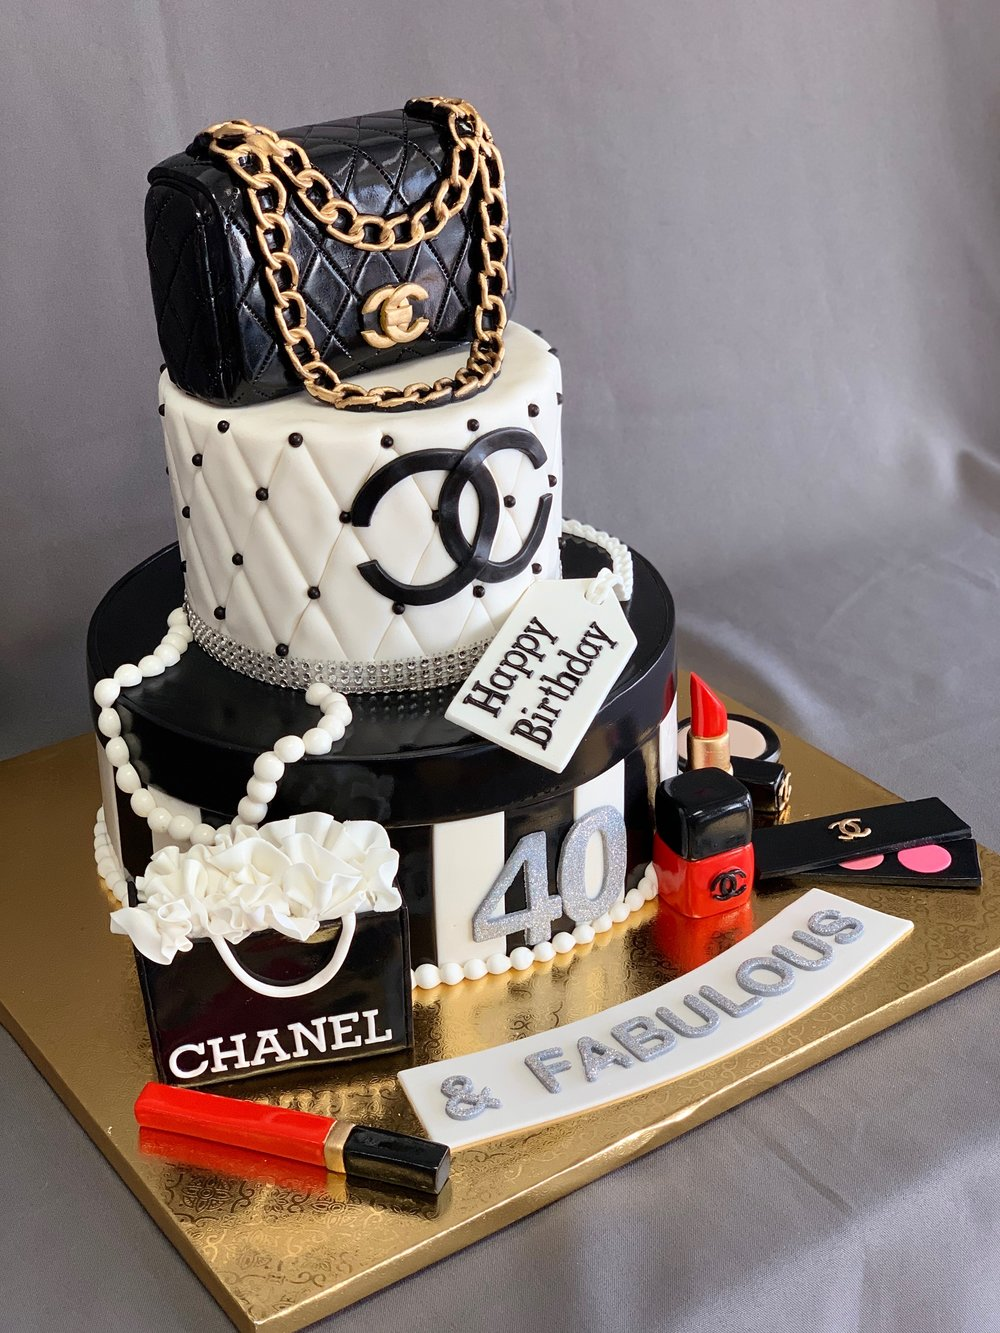 Chanel Themed Birthday Cake NJ